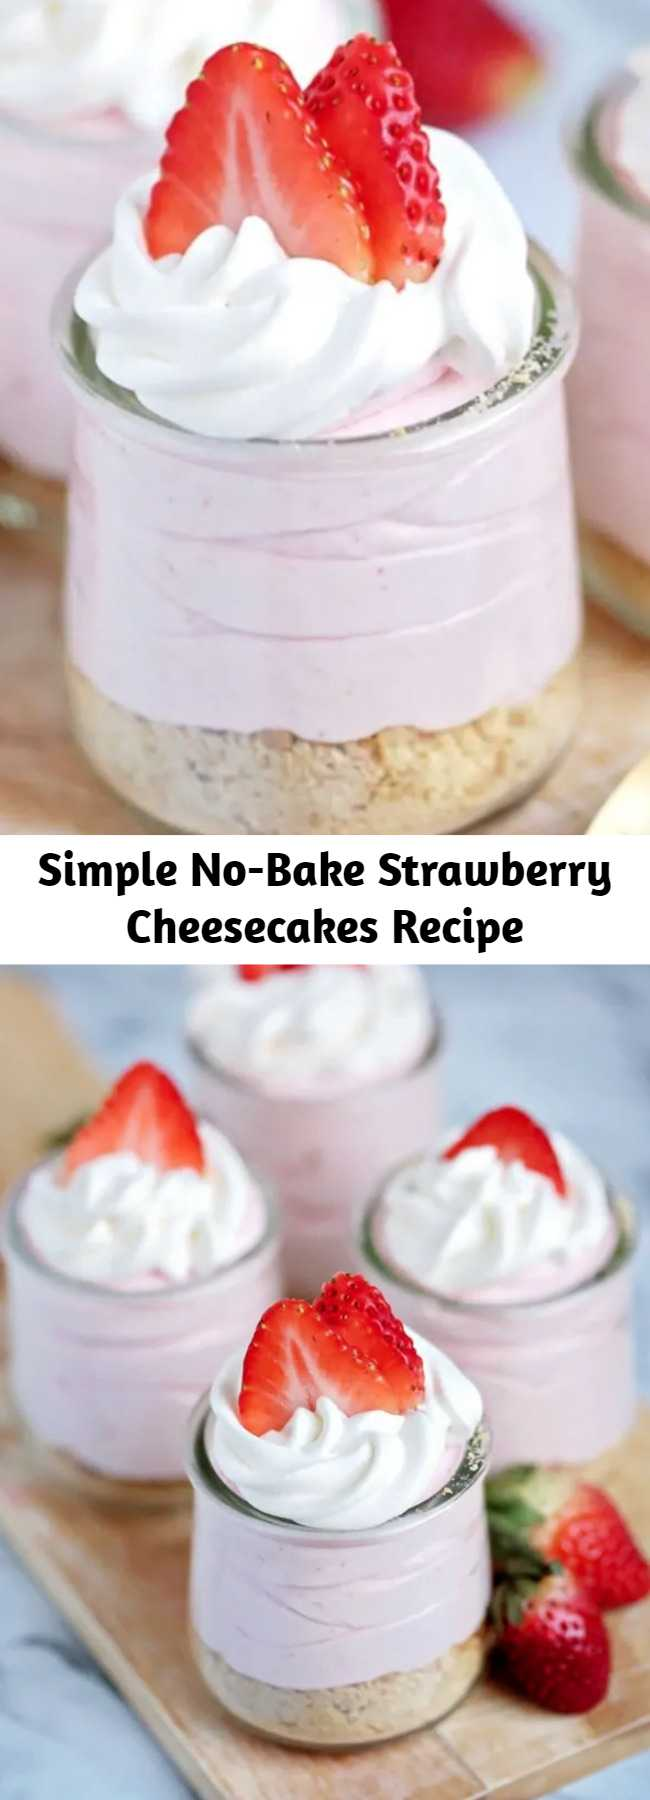 Simple No-Bake Strawberry Cheesecakes Recipe - A super simple recipe for No Bake Strawberry Cheesecakes using fresh or frozen strawberries. The perfect no-bake dessert for summer entertaining – or a fun recipe for the kids to help make!